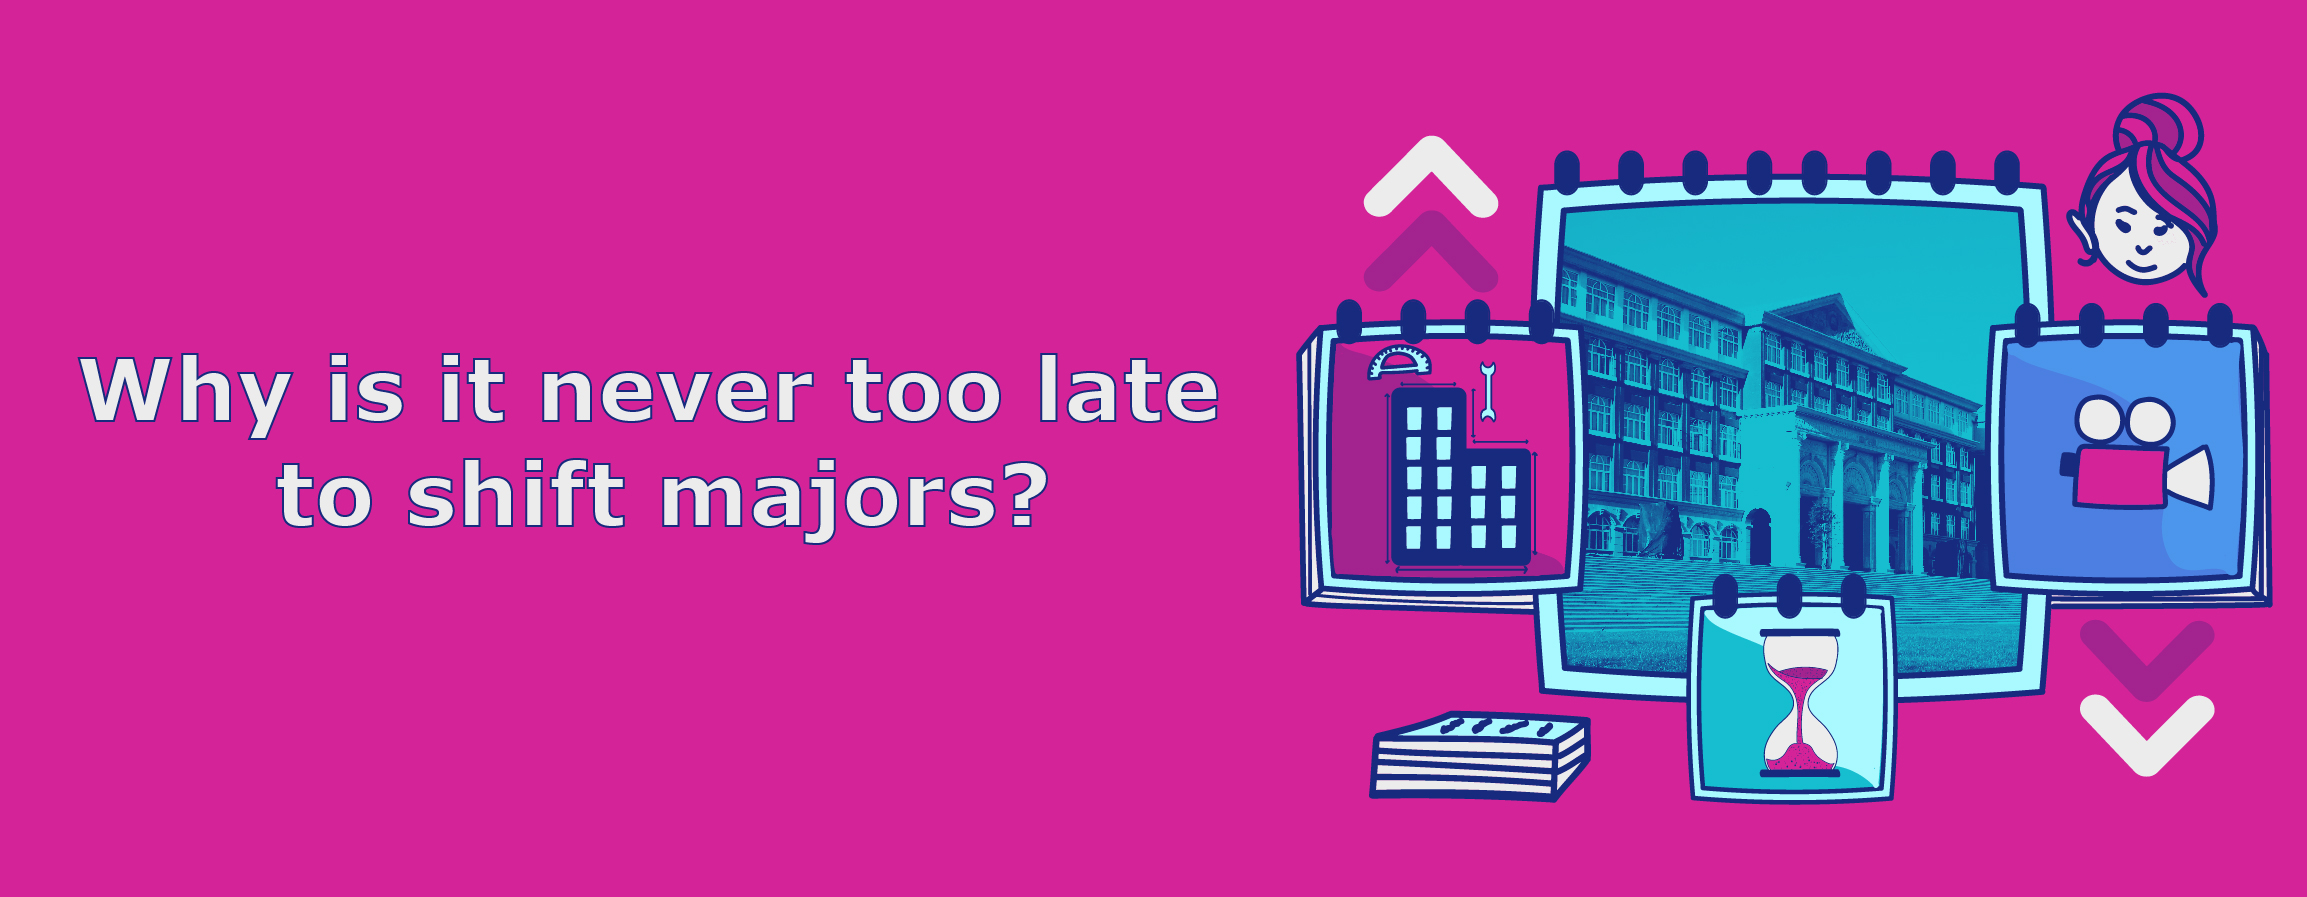 Why is It Never Too Late to Shift Majors?